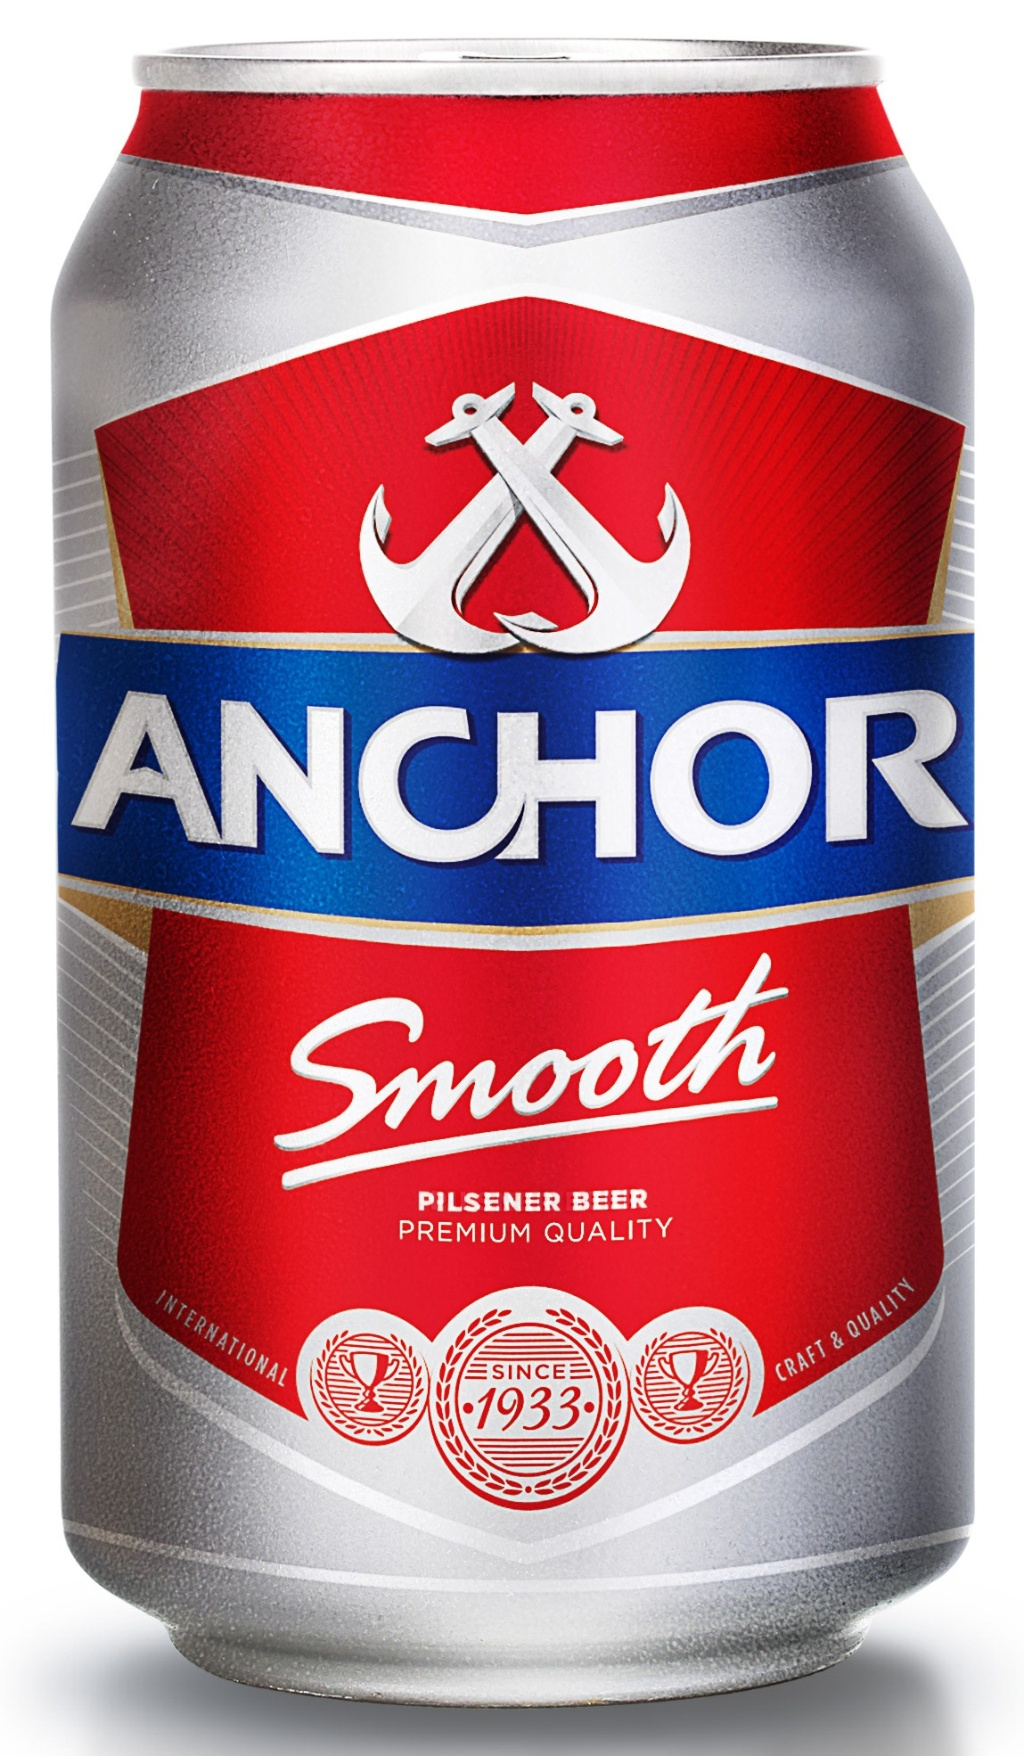 Anchor Smooth (available in different sizes)